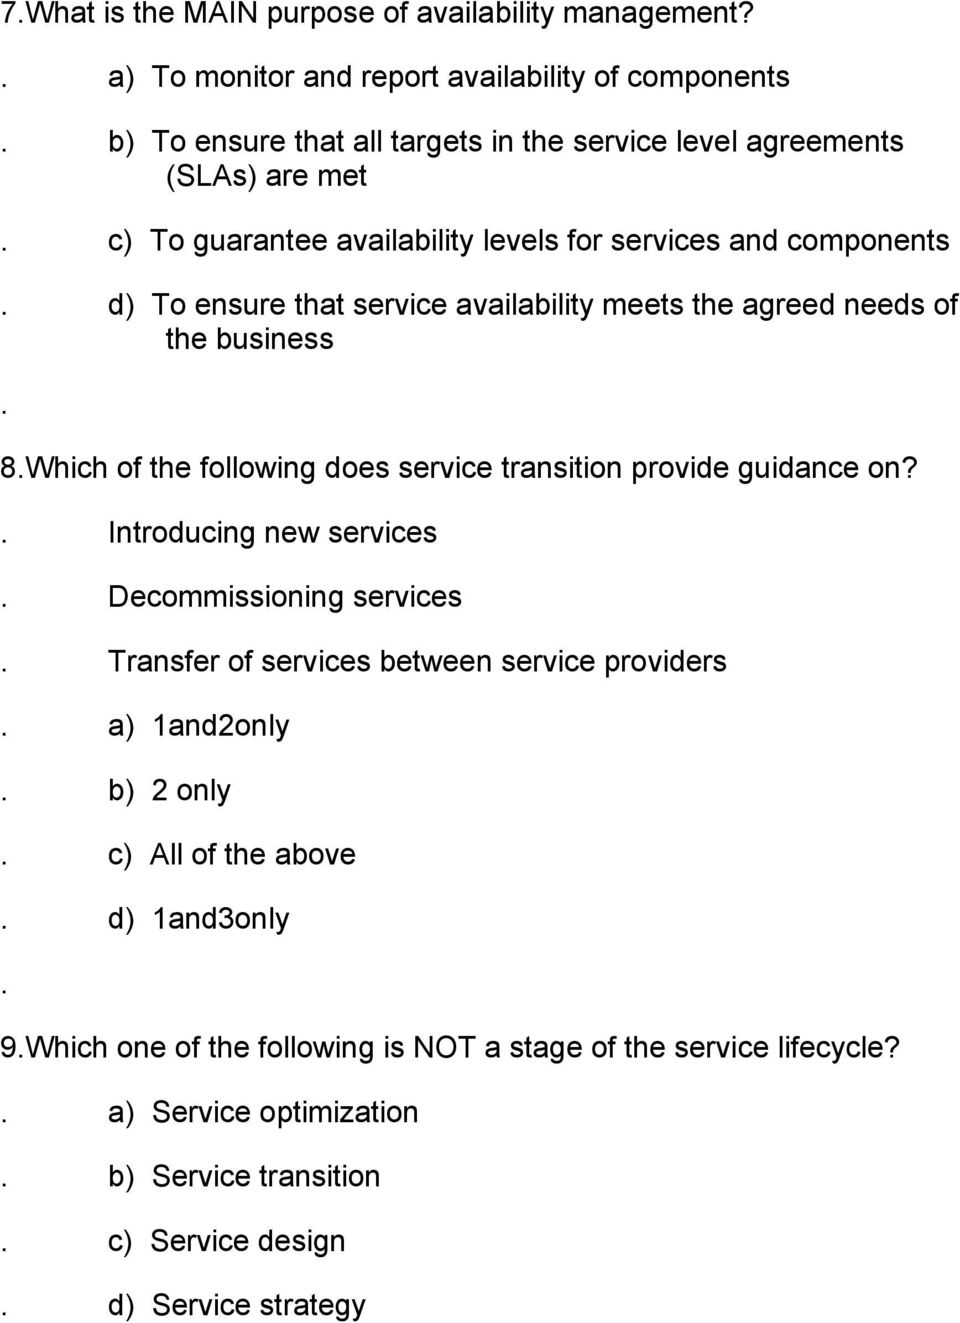 services and components d) To ensure that service availability meets the agreed needs of the business 8 Which of the following does service transition provide guidance on?